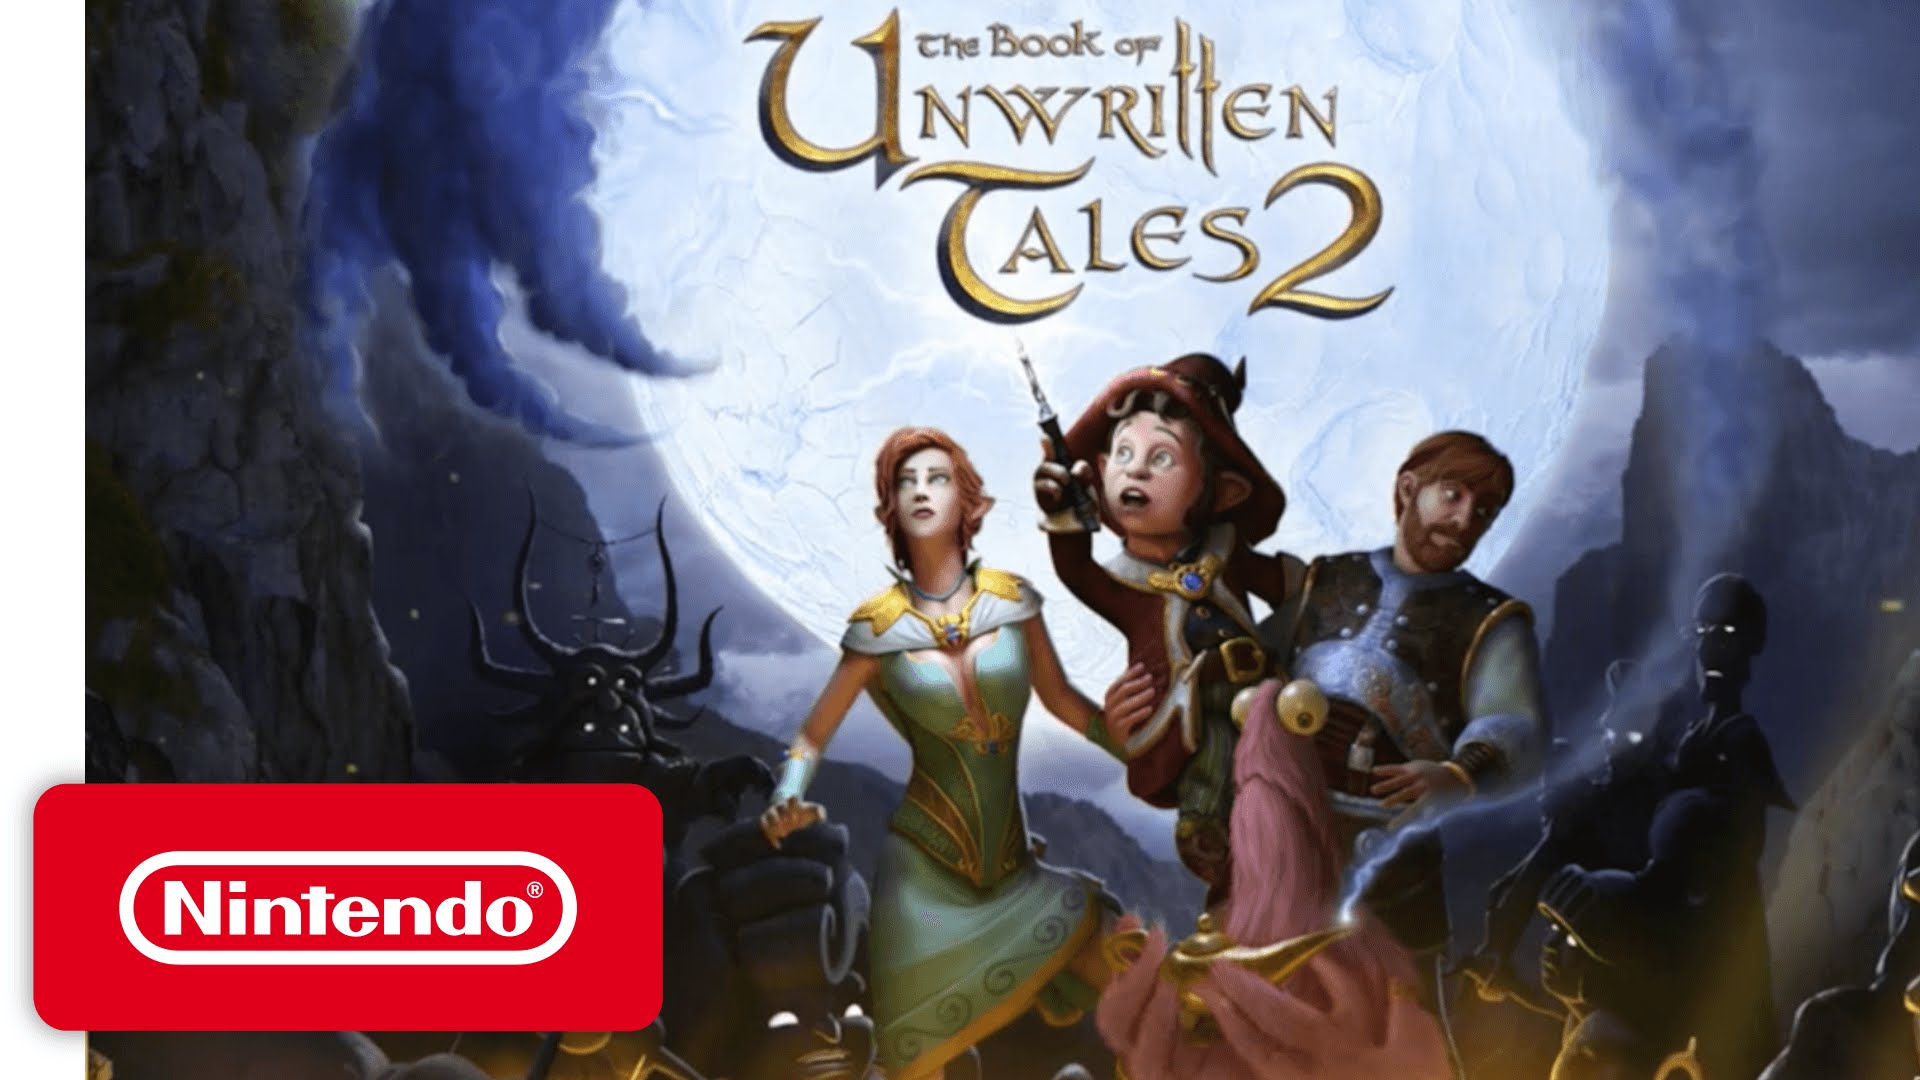 The Book of Unwritten Tales 2 - Game Trailer